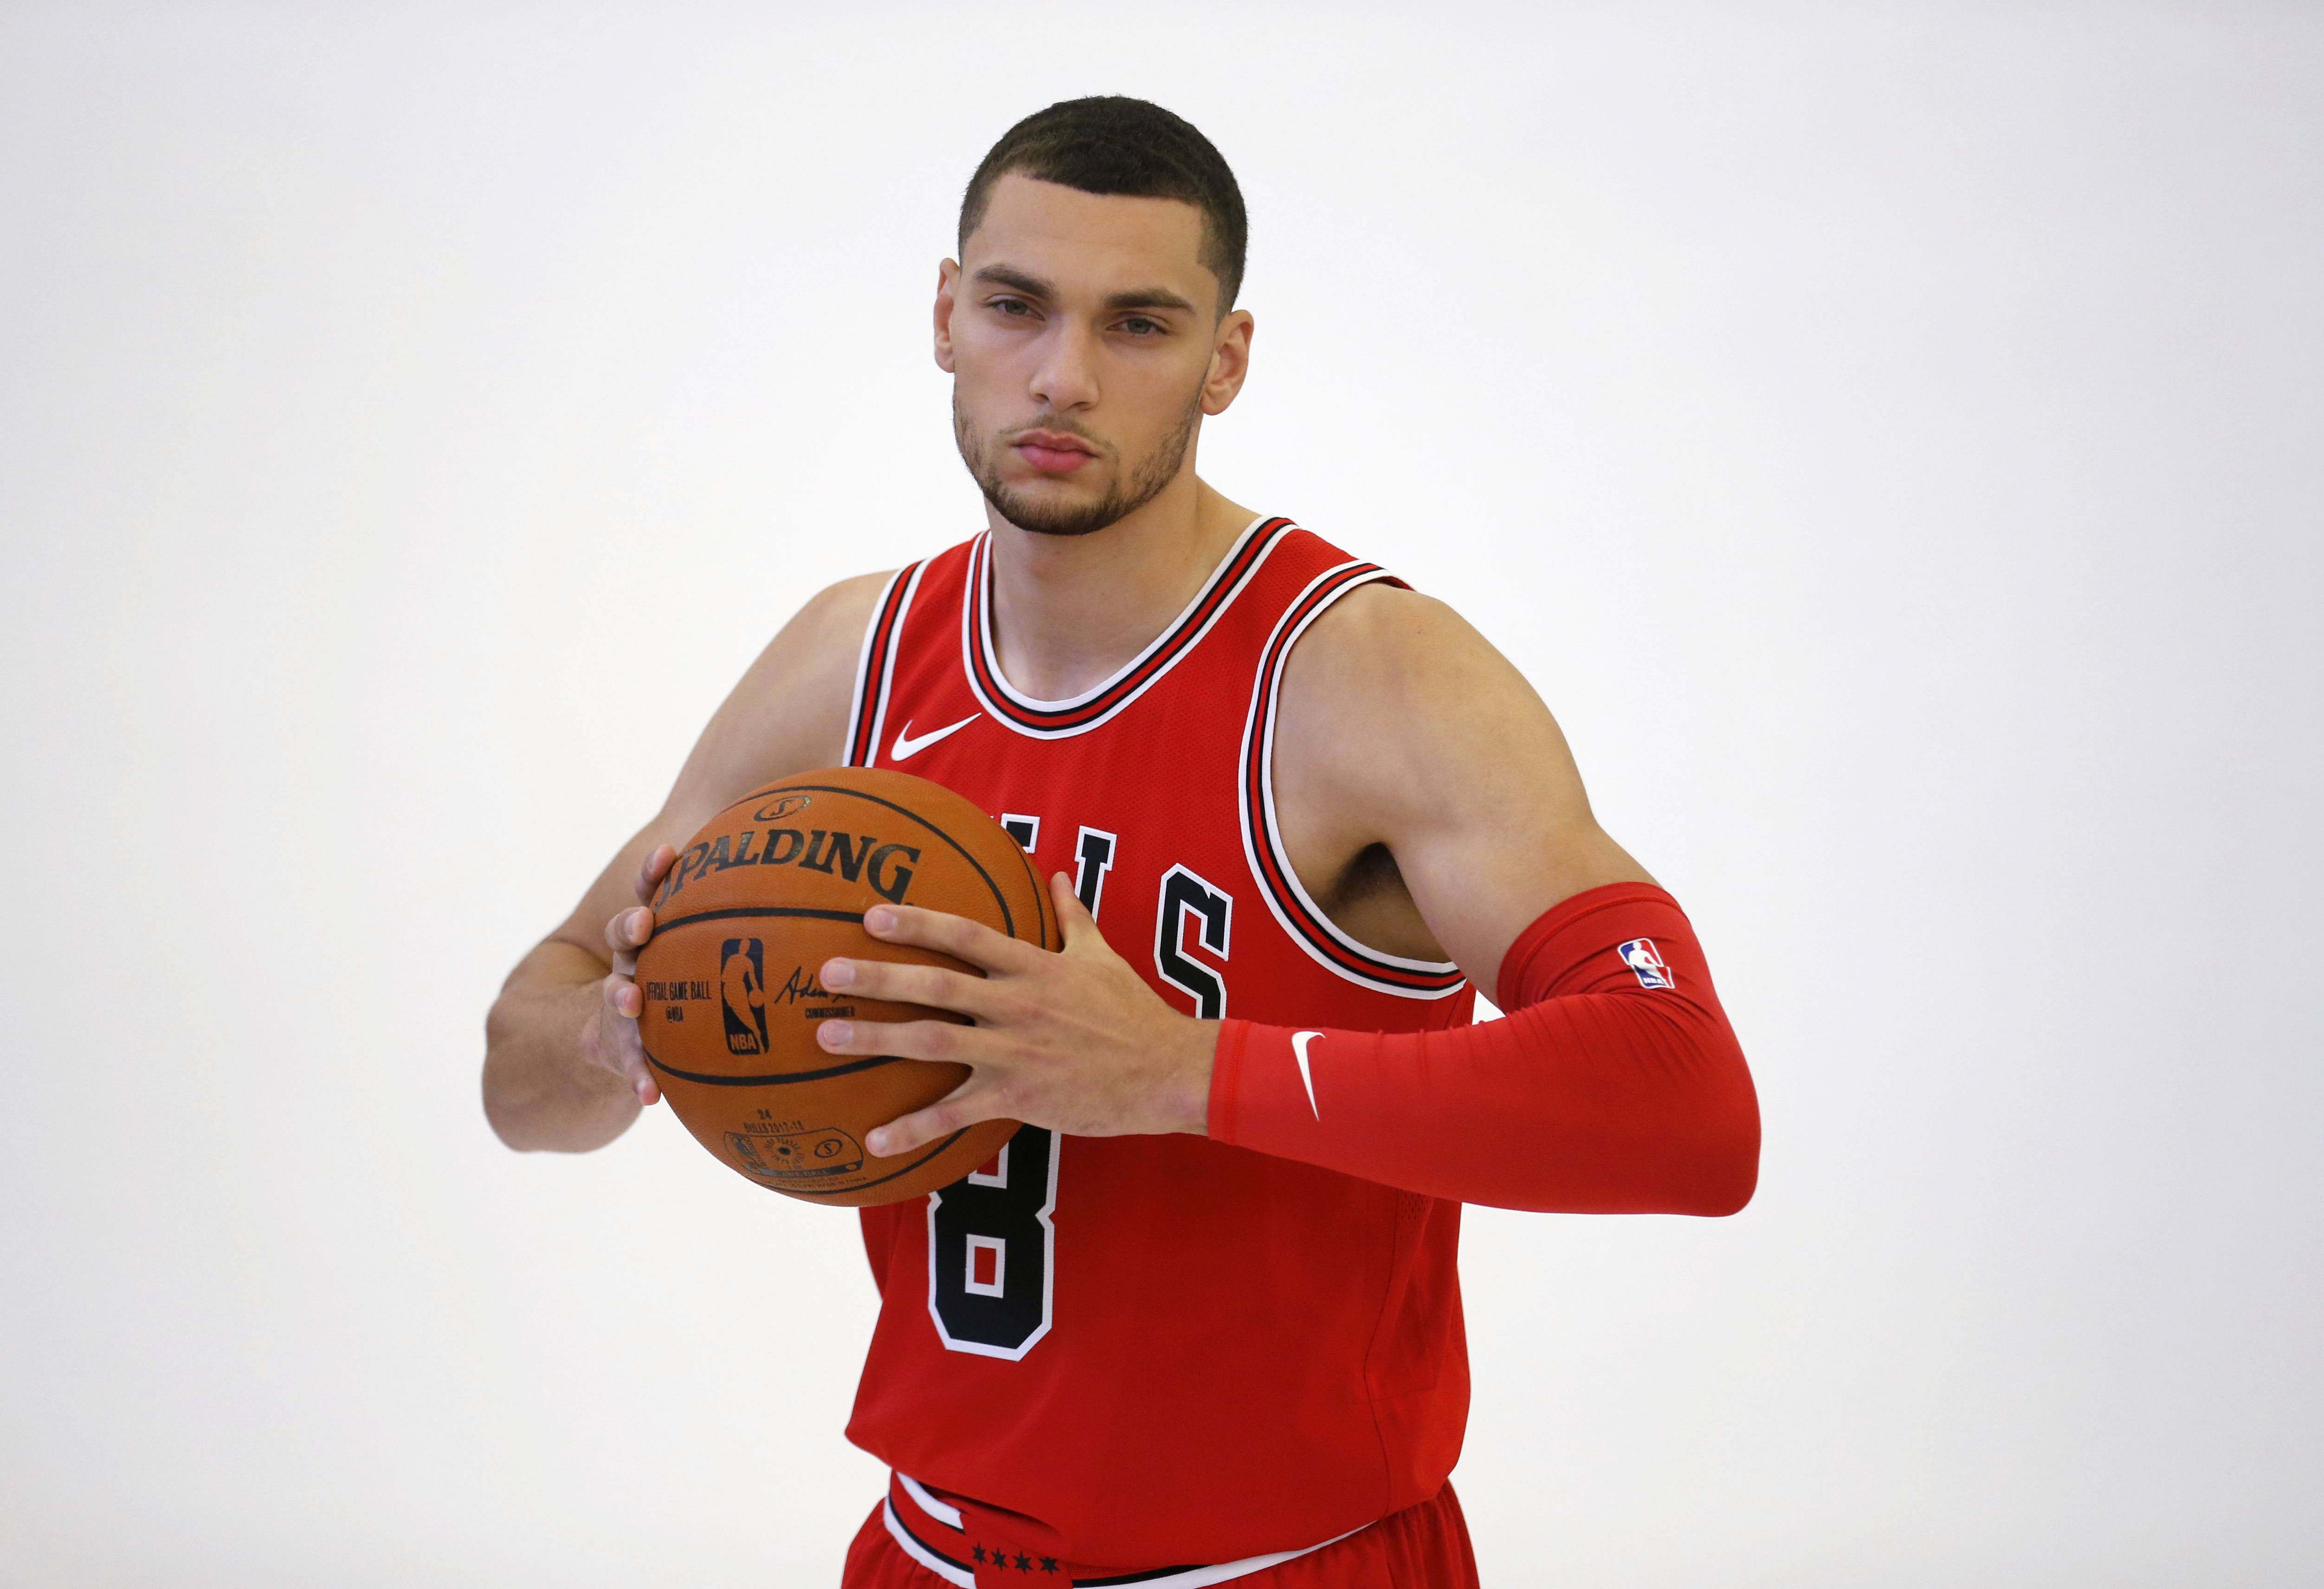 Chicago Bulls' Zach LaVine will start his string of six-straight training days on Saturday with hopes of returning to the lineup in the near future.